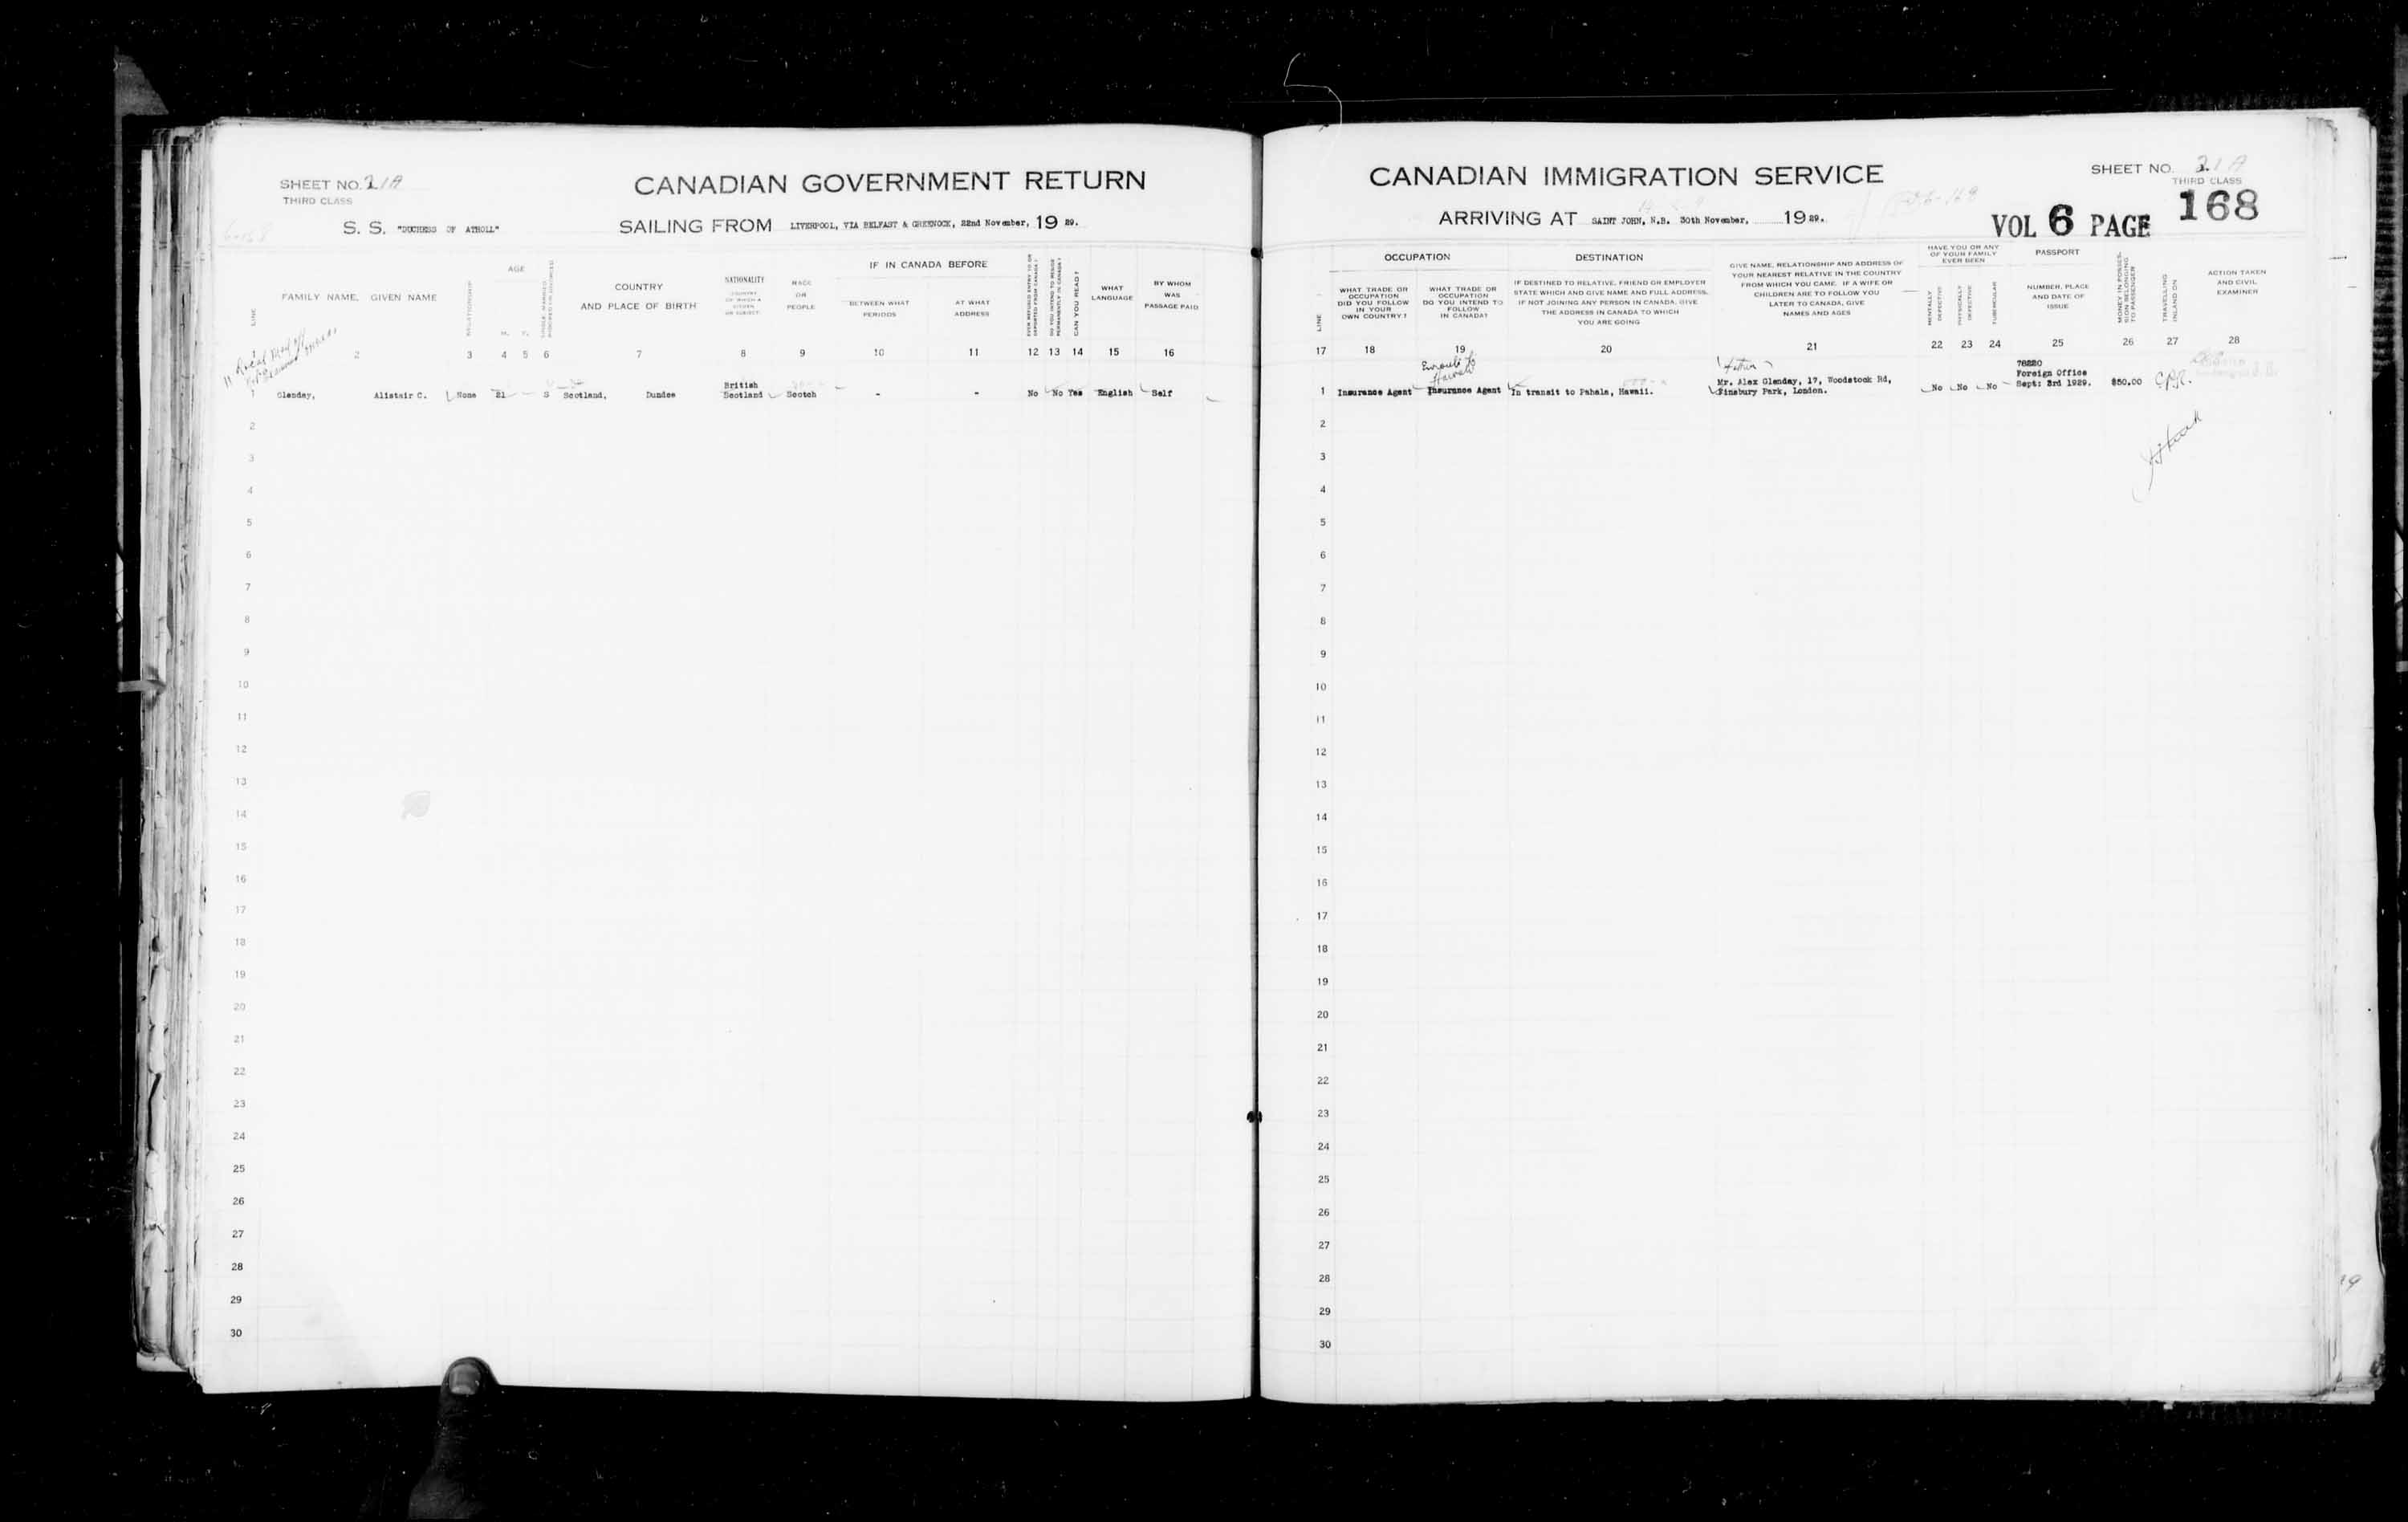 Title: Passenger Lists: Saint John (1925-1935) - Mikan Number: 134836 - Microform: t-14854